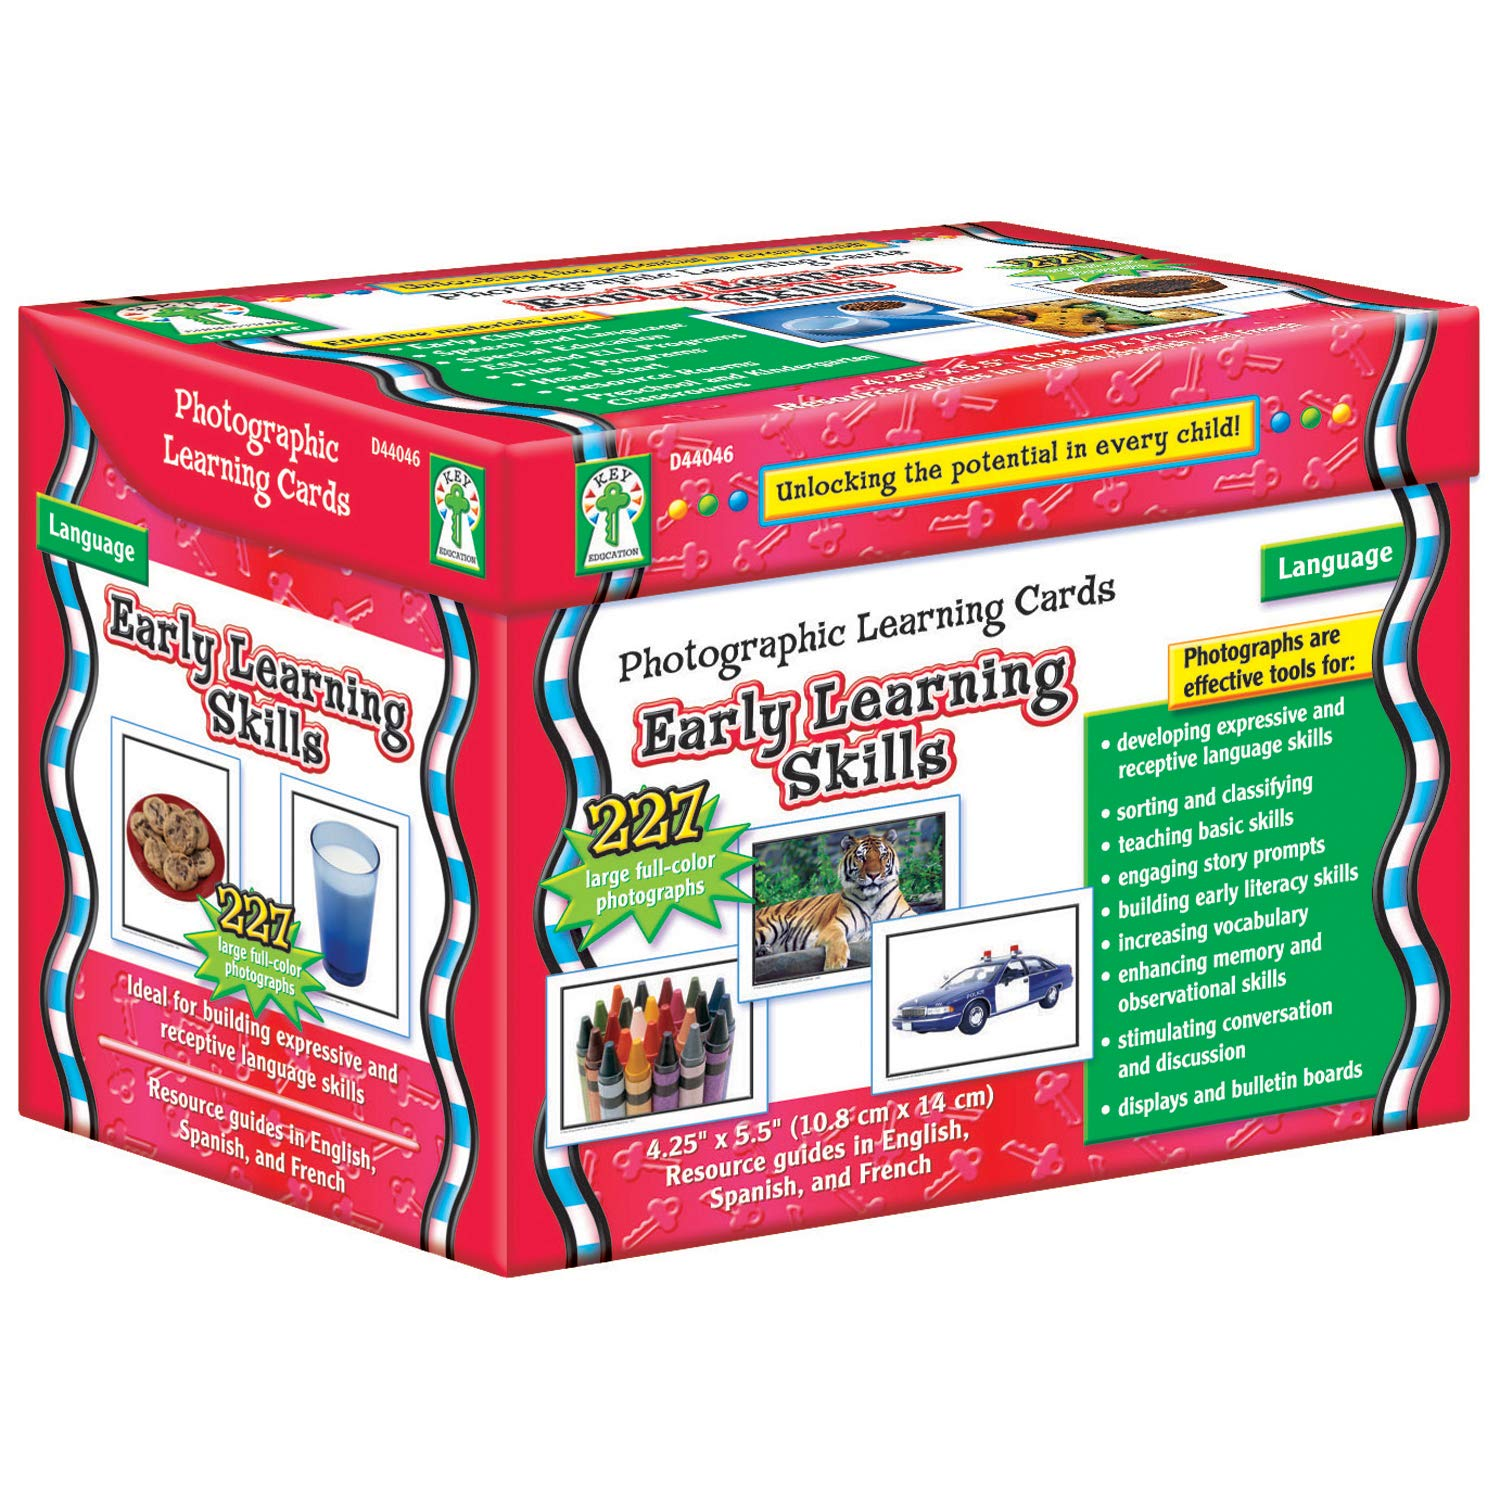 Carson Dellosa Early Learning Skills/Learning Cards (D44046) by Carson-Dellosa